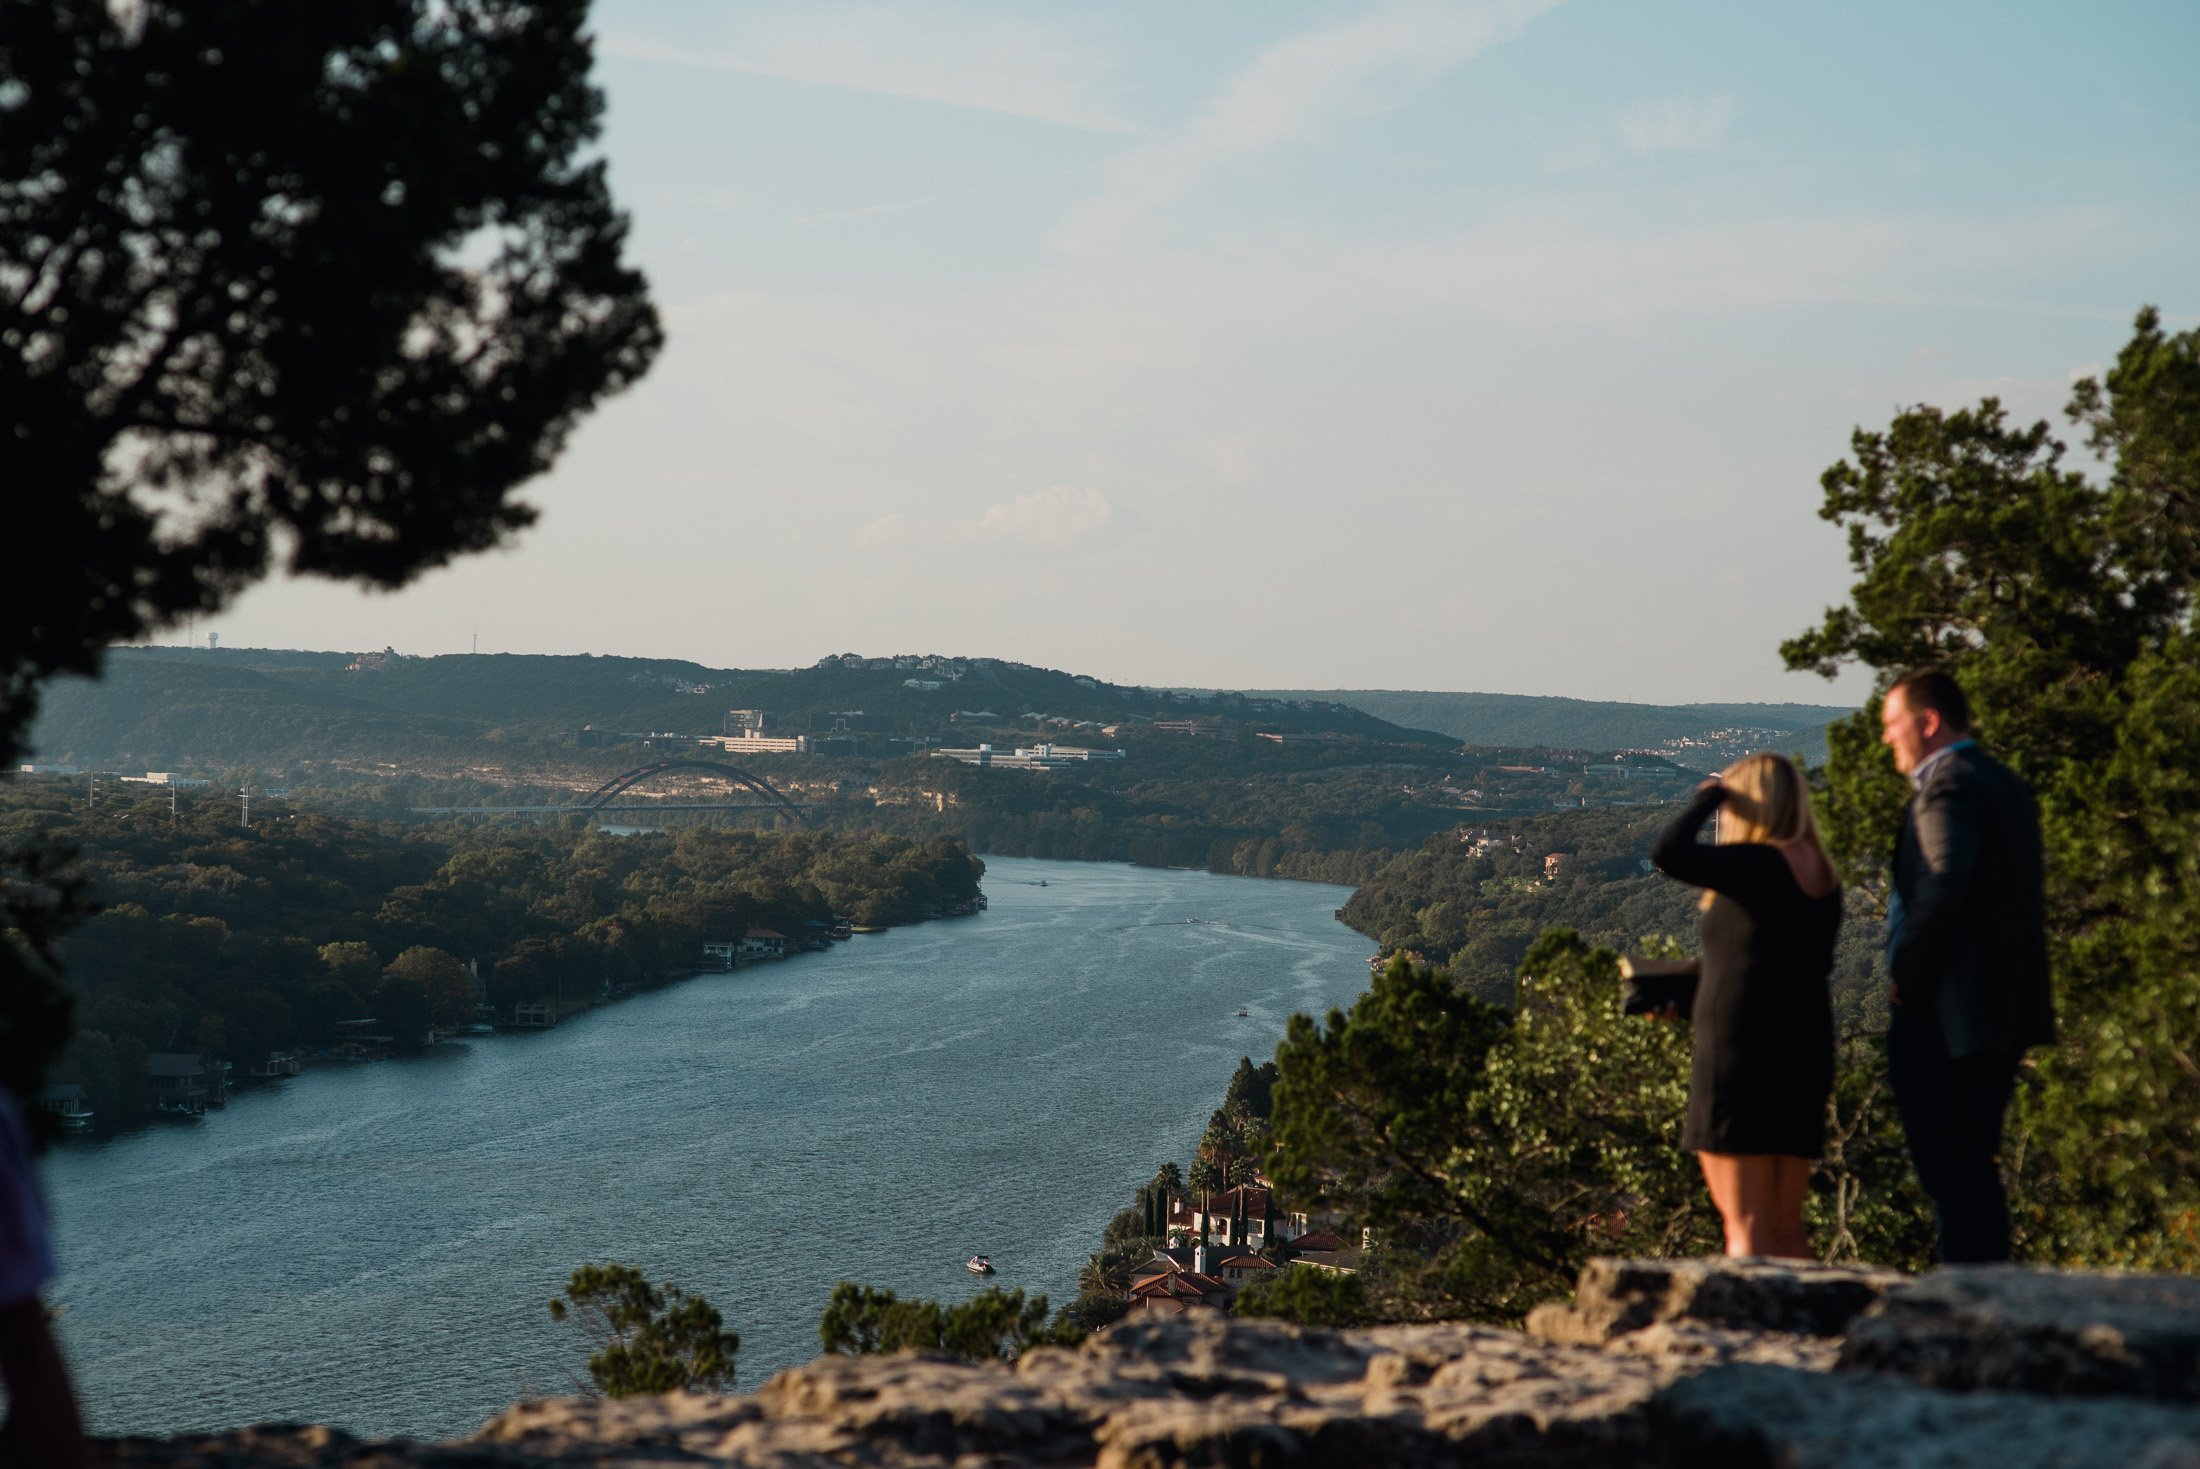 mount bonnell proposal in austin, austin proposal photographer outdoors